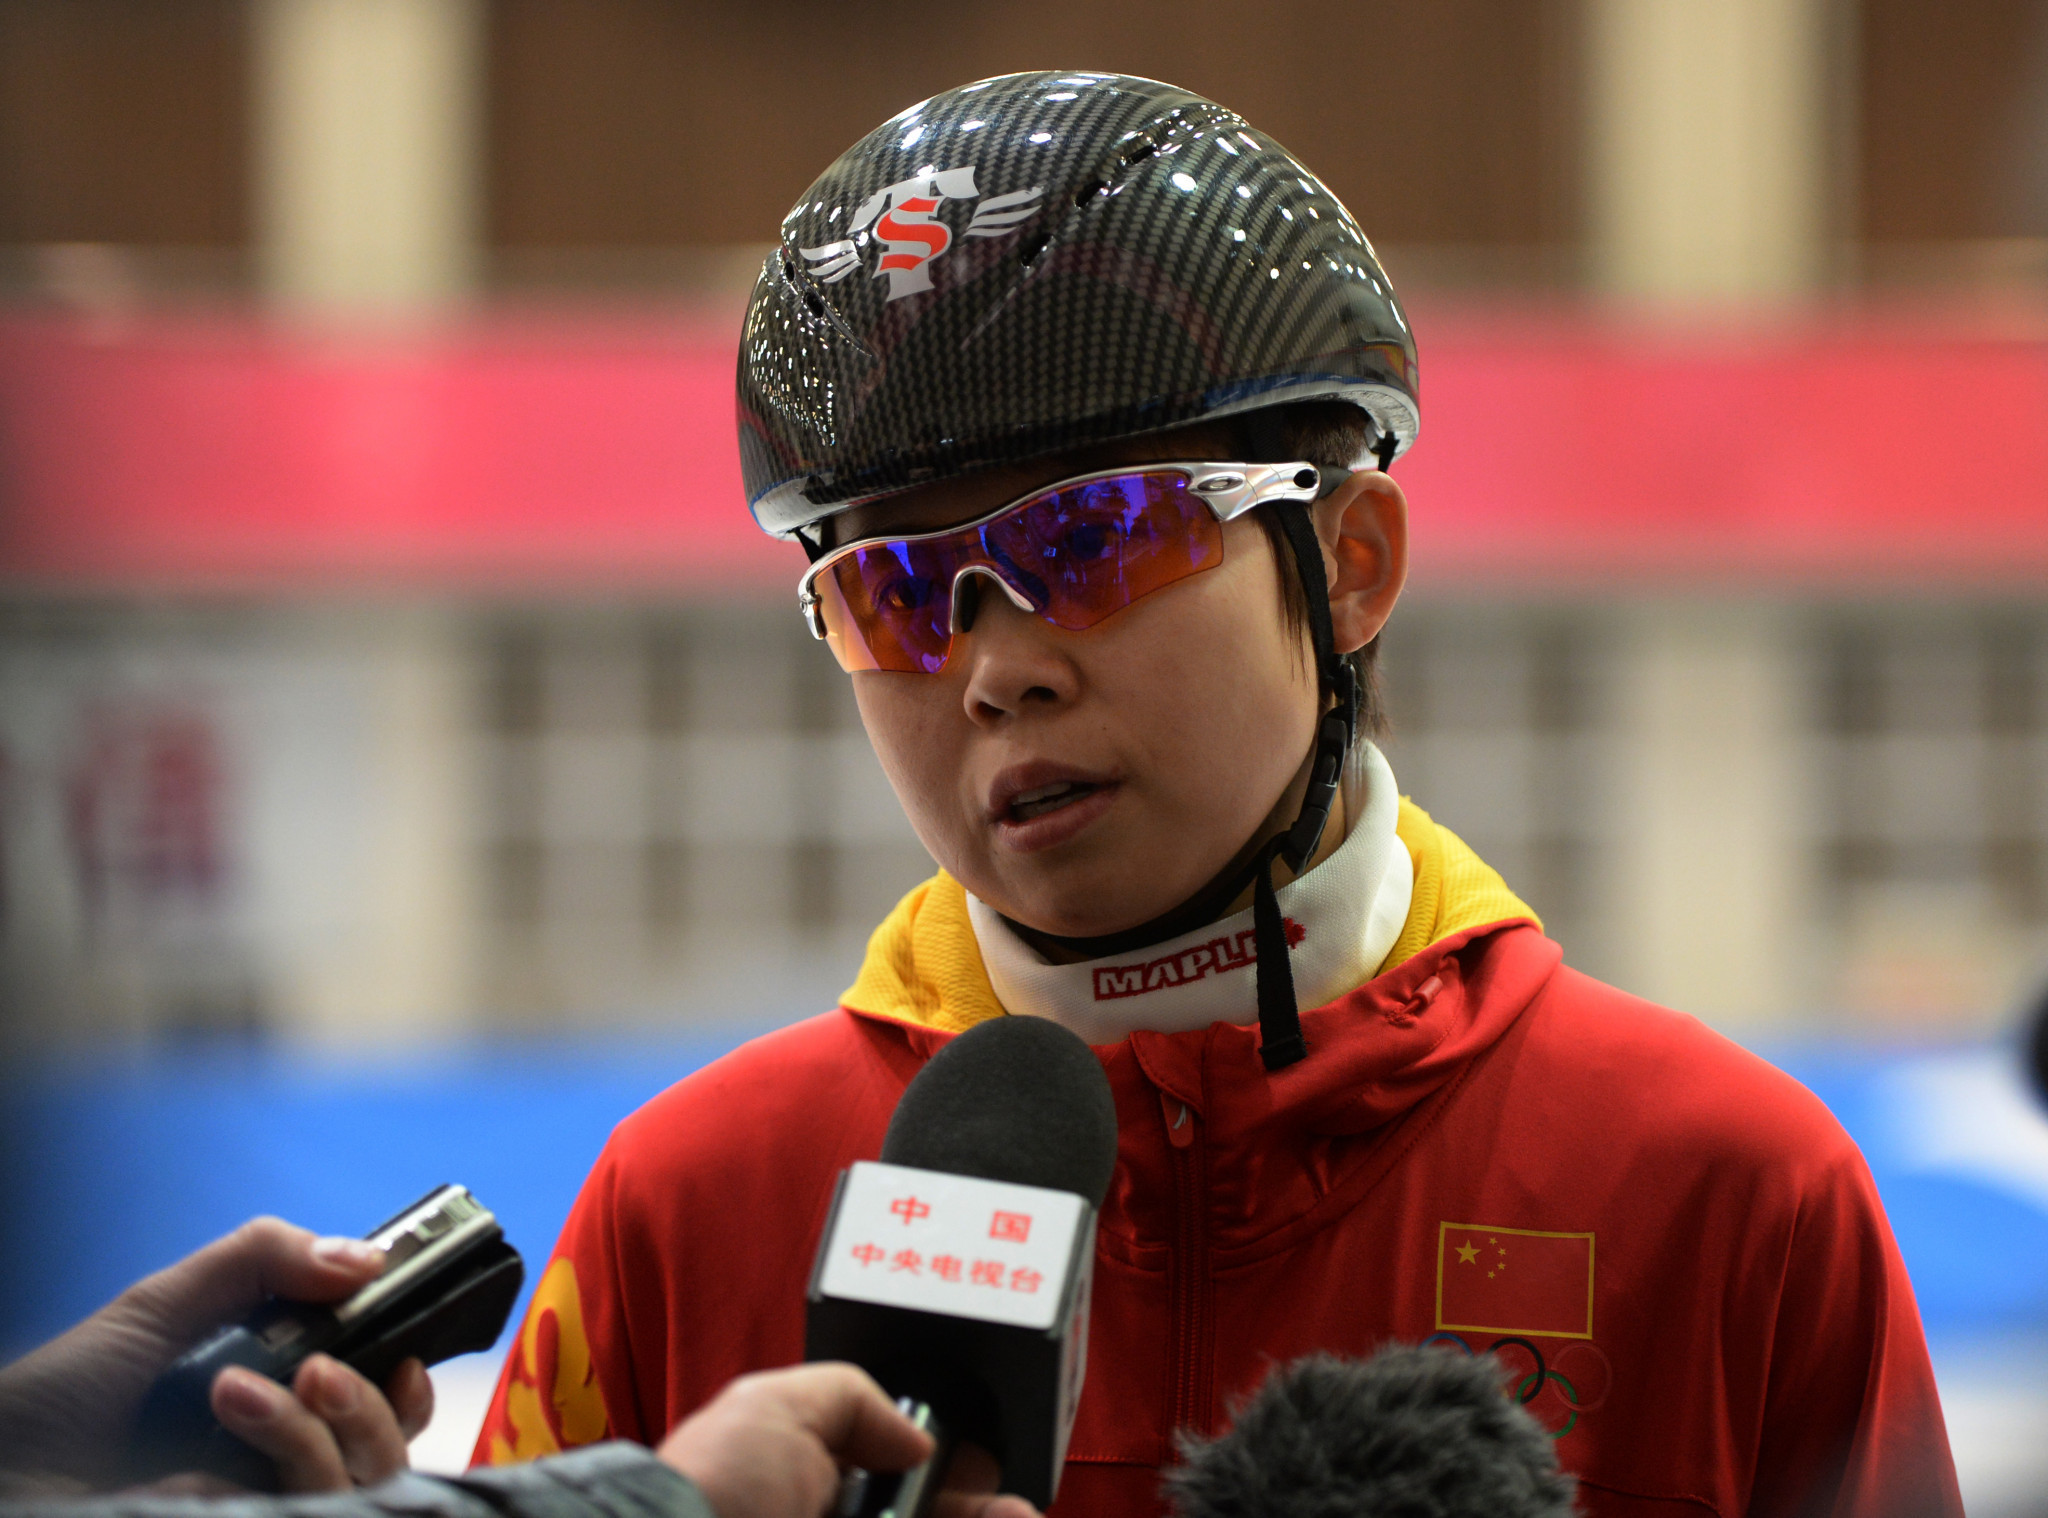 China appoints Olympic legend Wang Meng as head of speed skating team targeting Beijing 2022 glory